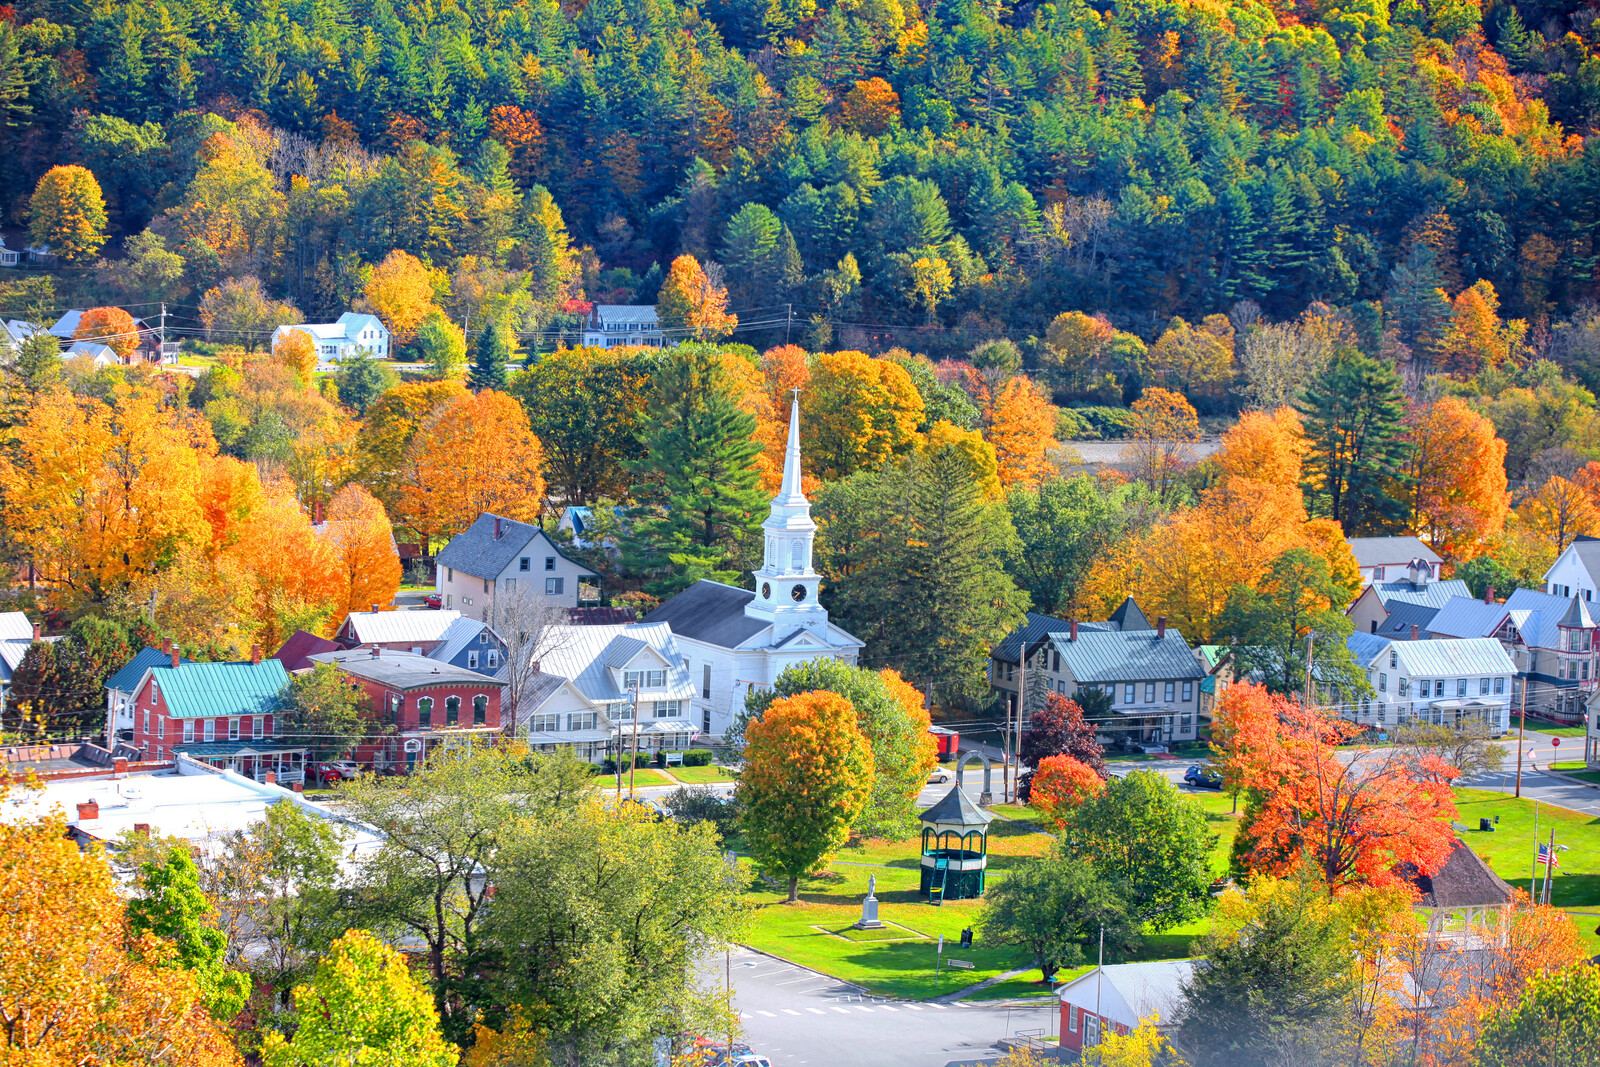 Small new england town in Delaware in fall with autumn colors